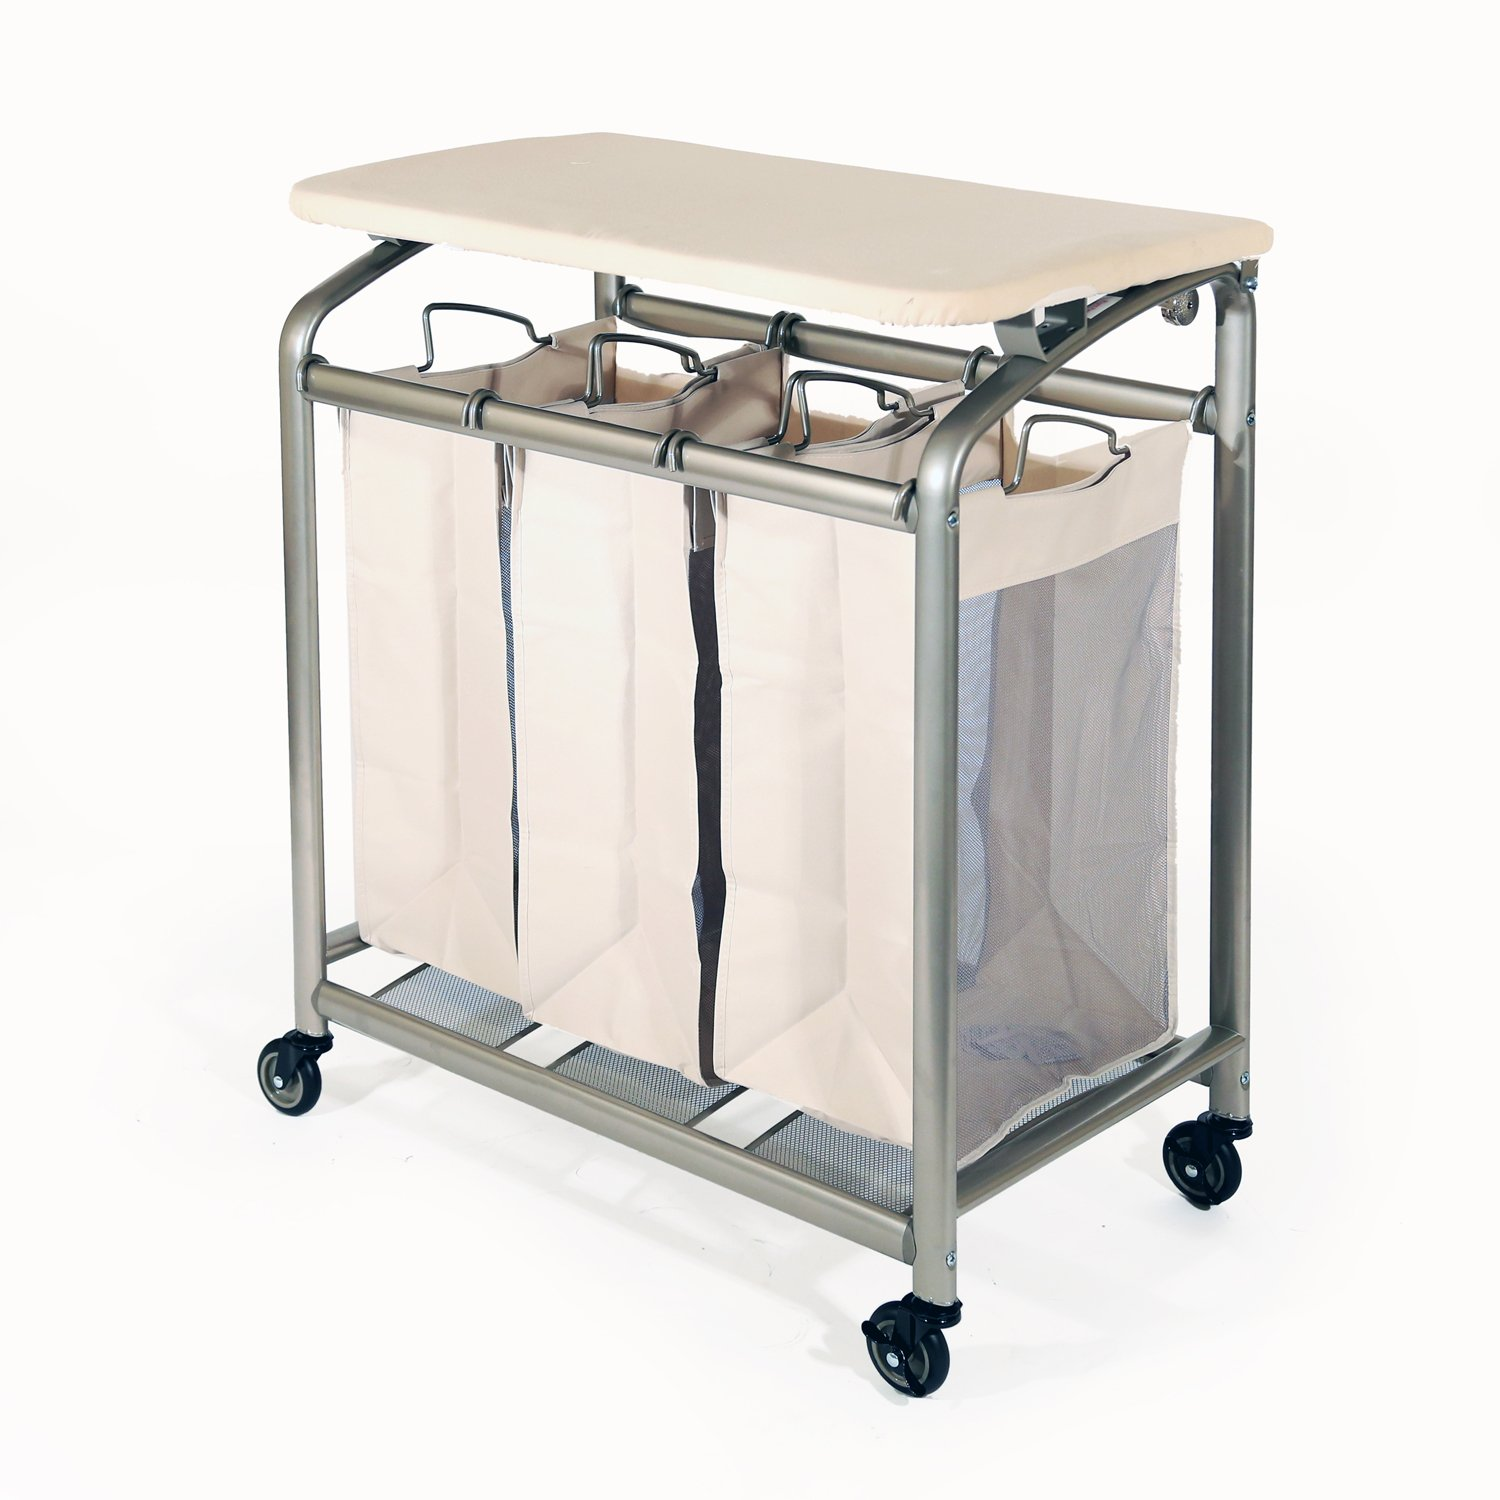 Superb Amazon.com: Seville Classics 3 Bag Folding Laundry Sorter: Home U0026 Kitchen